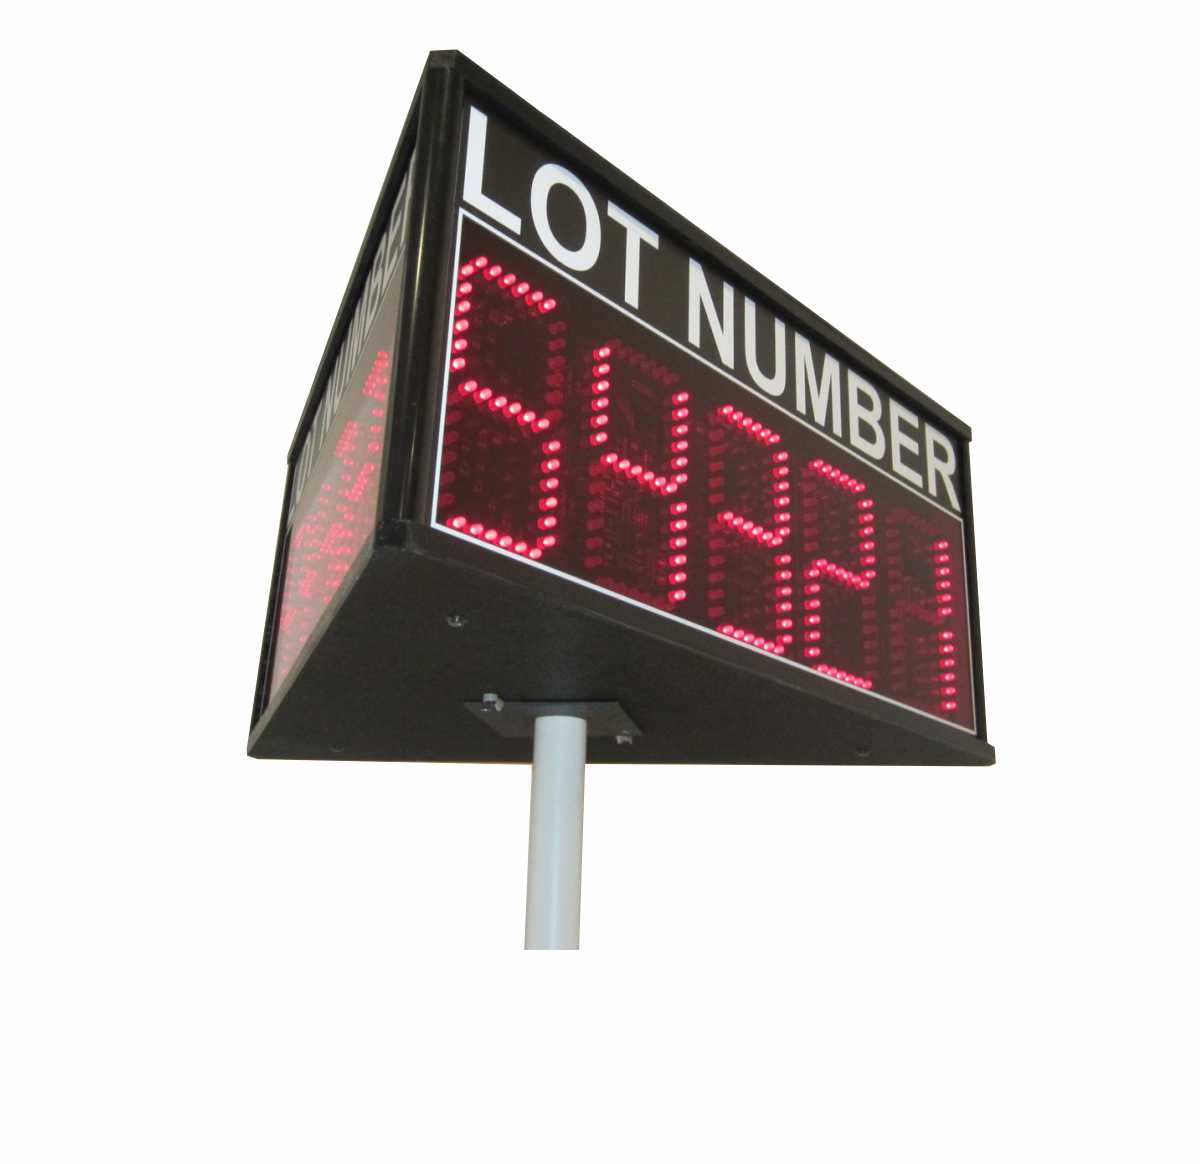 Three-Sided Auction Lot Number Sign